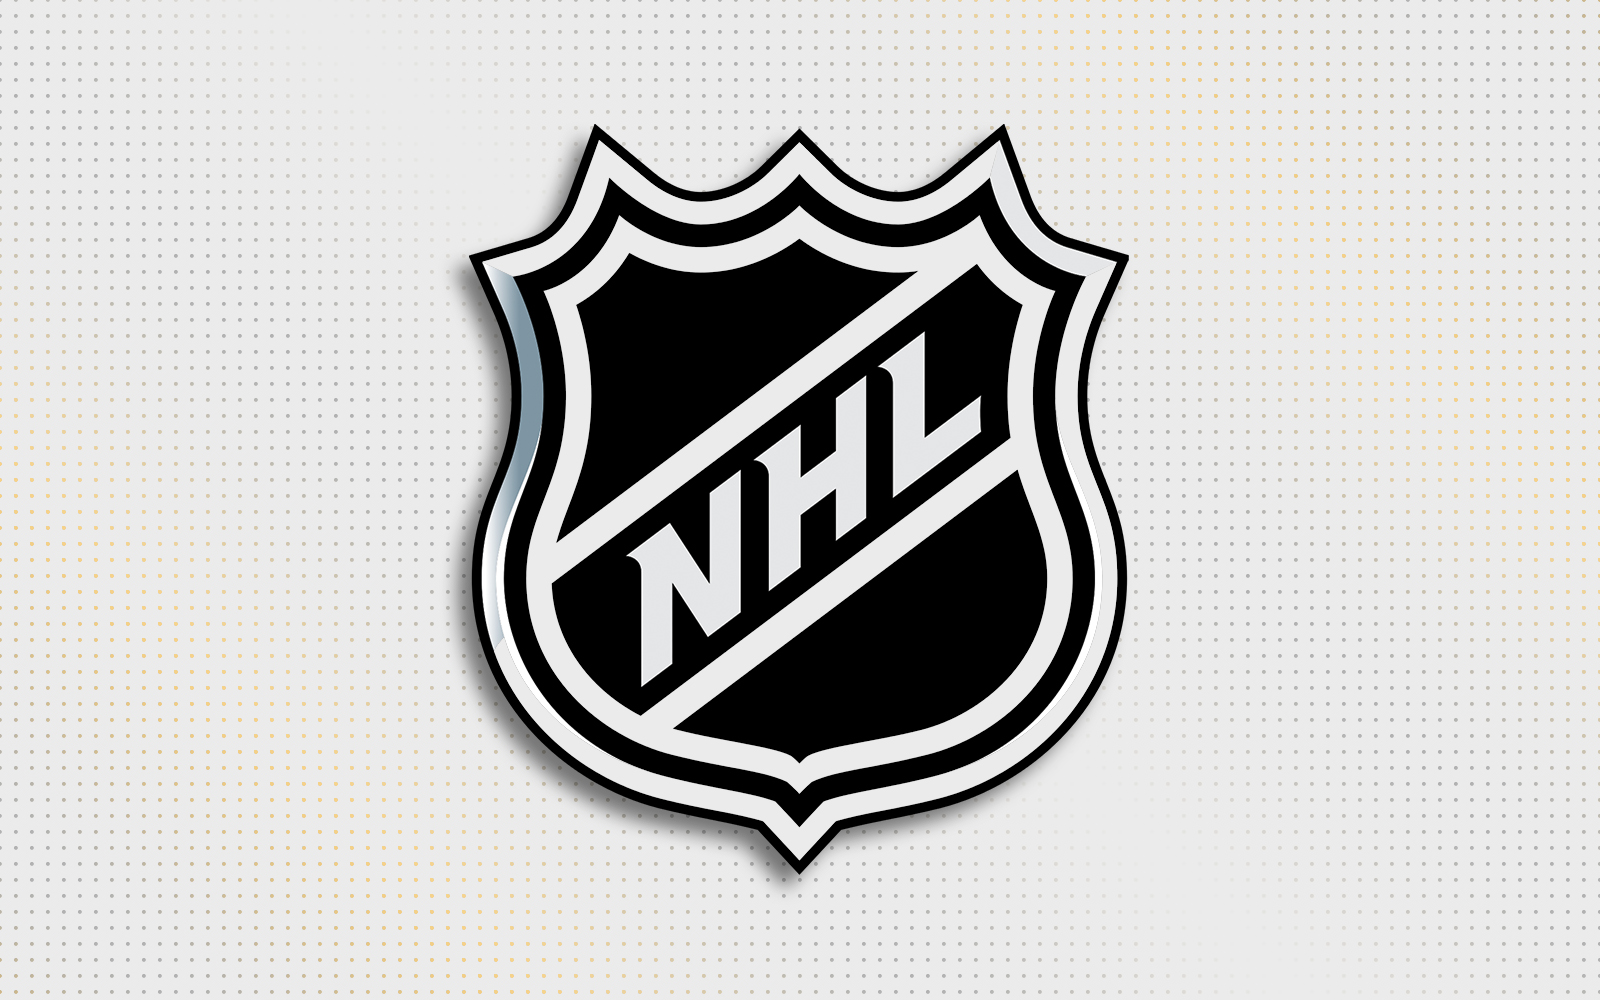 Generic NHL Post Image